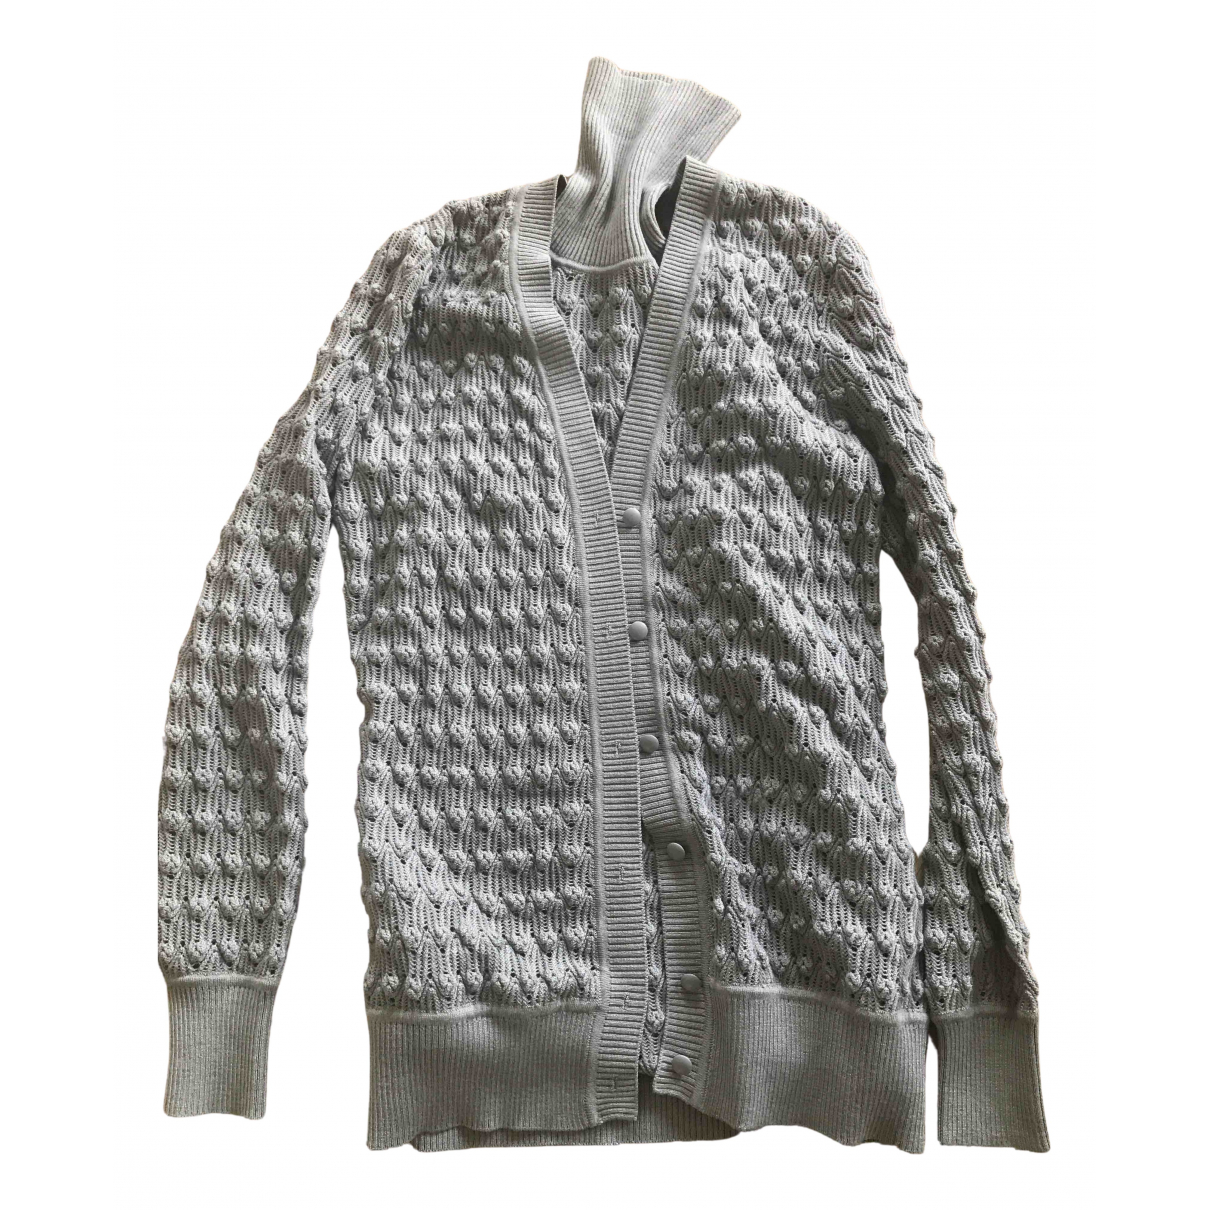 Missoni N Grey Wool Knitwear for Women 38 IT